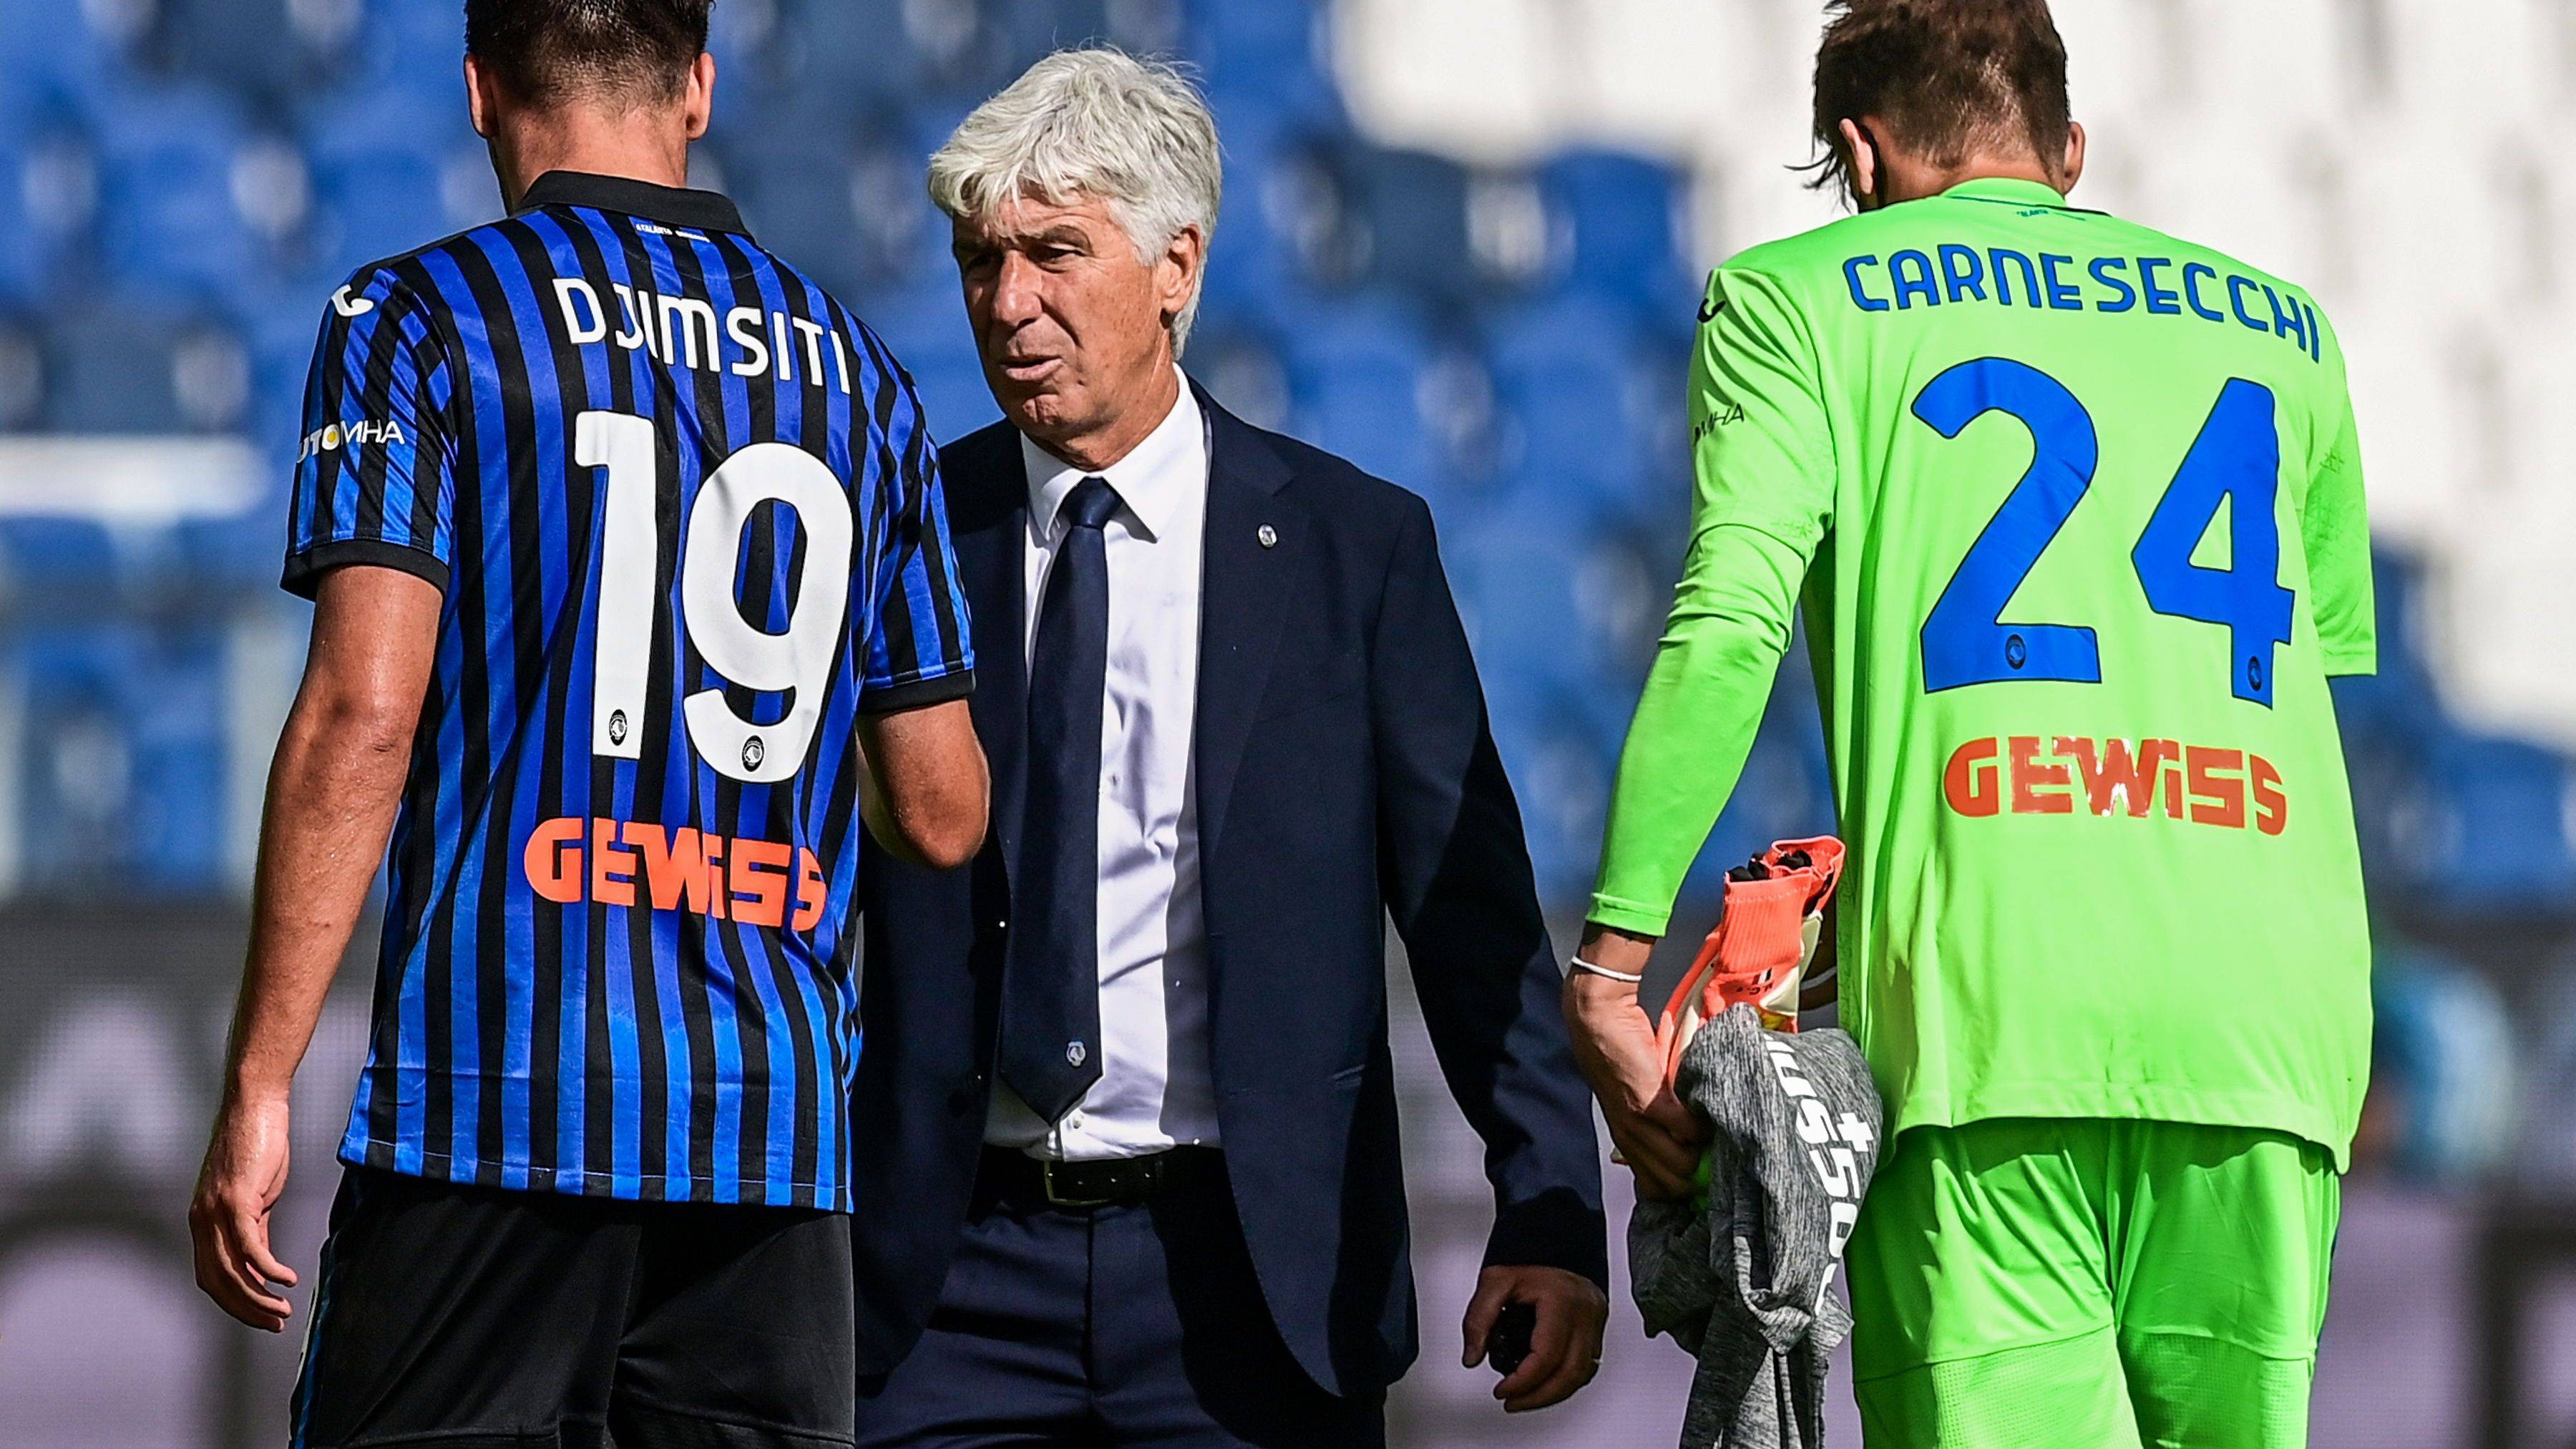 Watch Atalanta v Cagliari - Post-match Intervies (Gasperini) Online